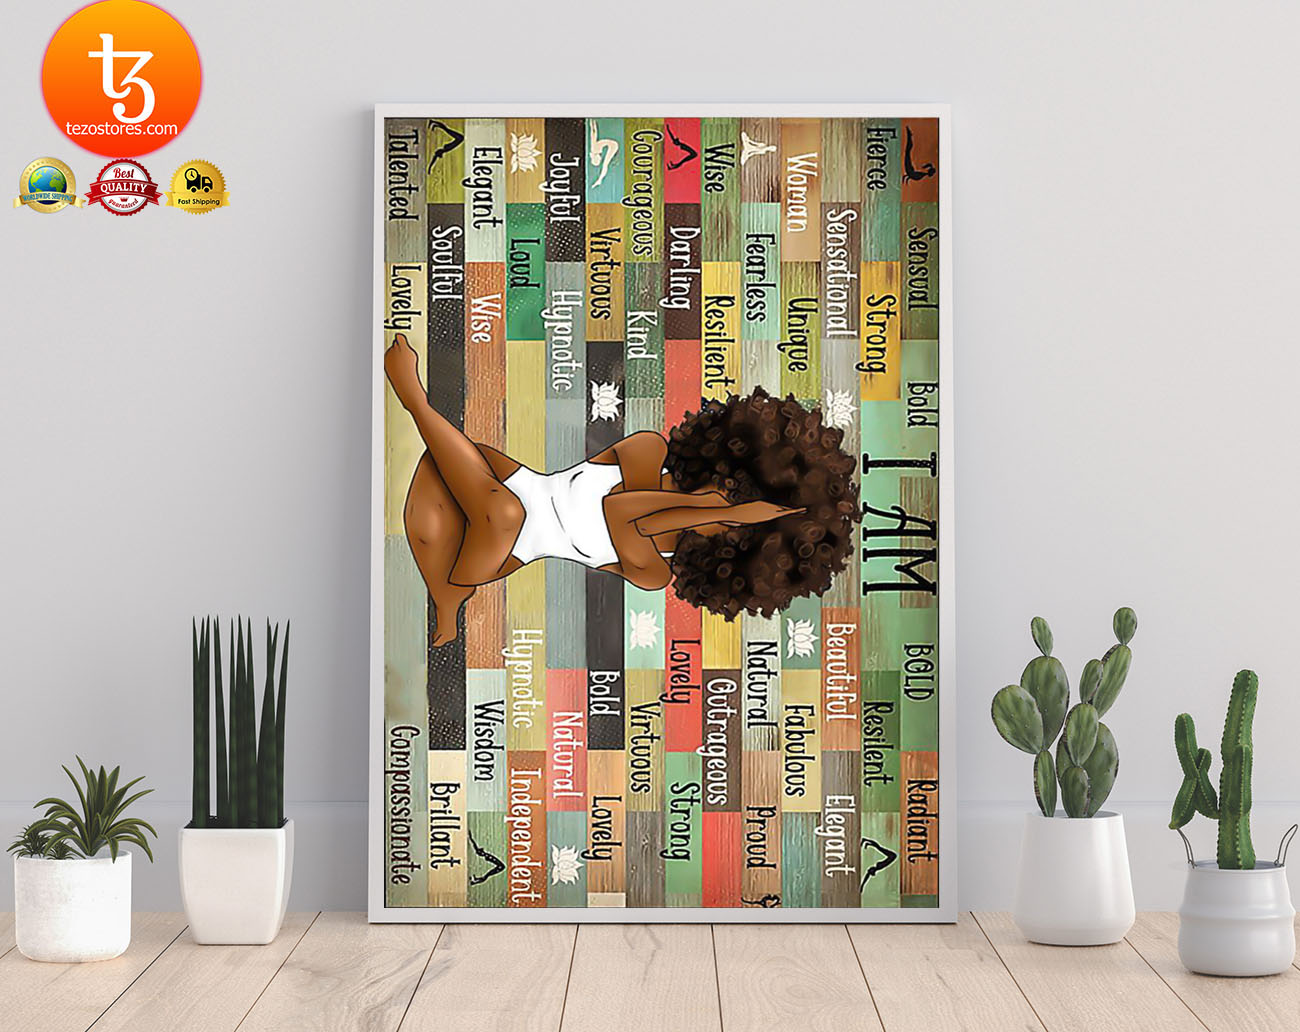 Black girl with yoga I am poster 19